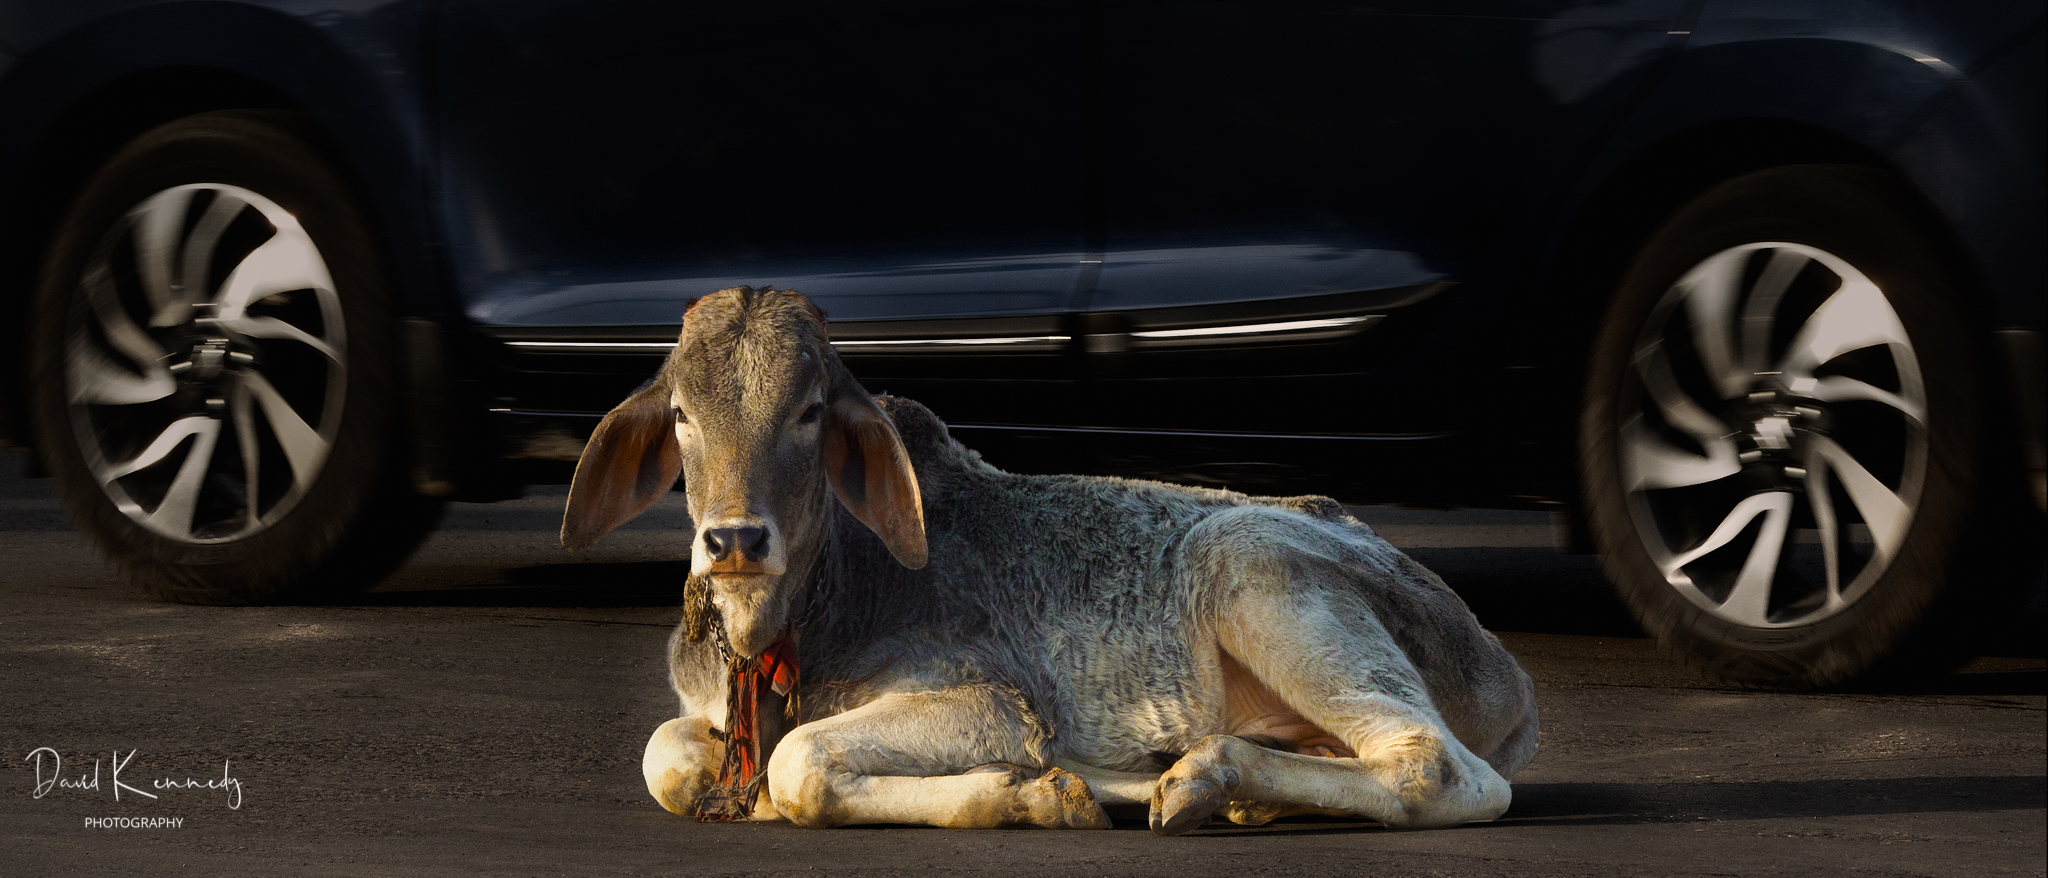 A street cow in lying in the road whilst a car passes behind it